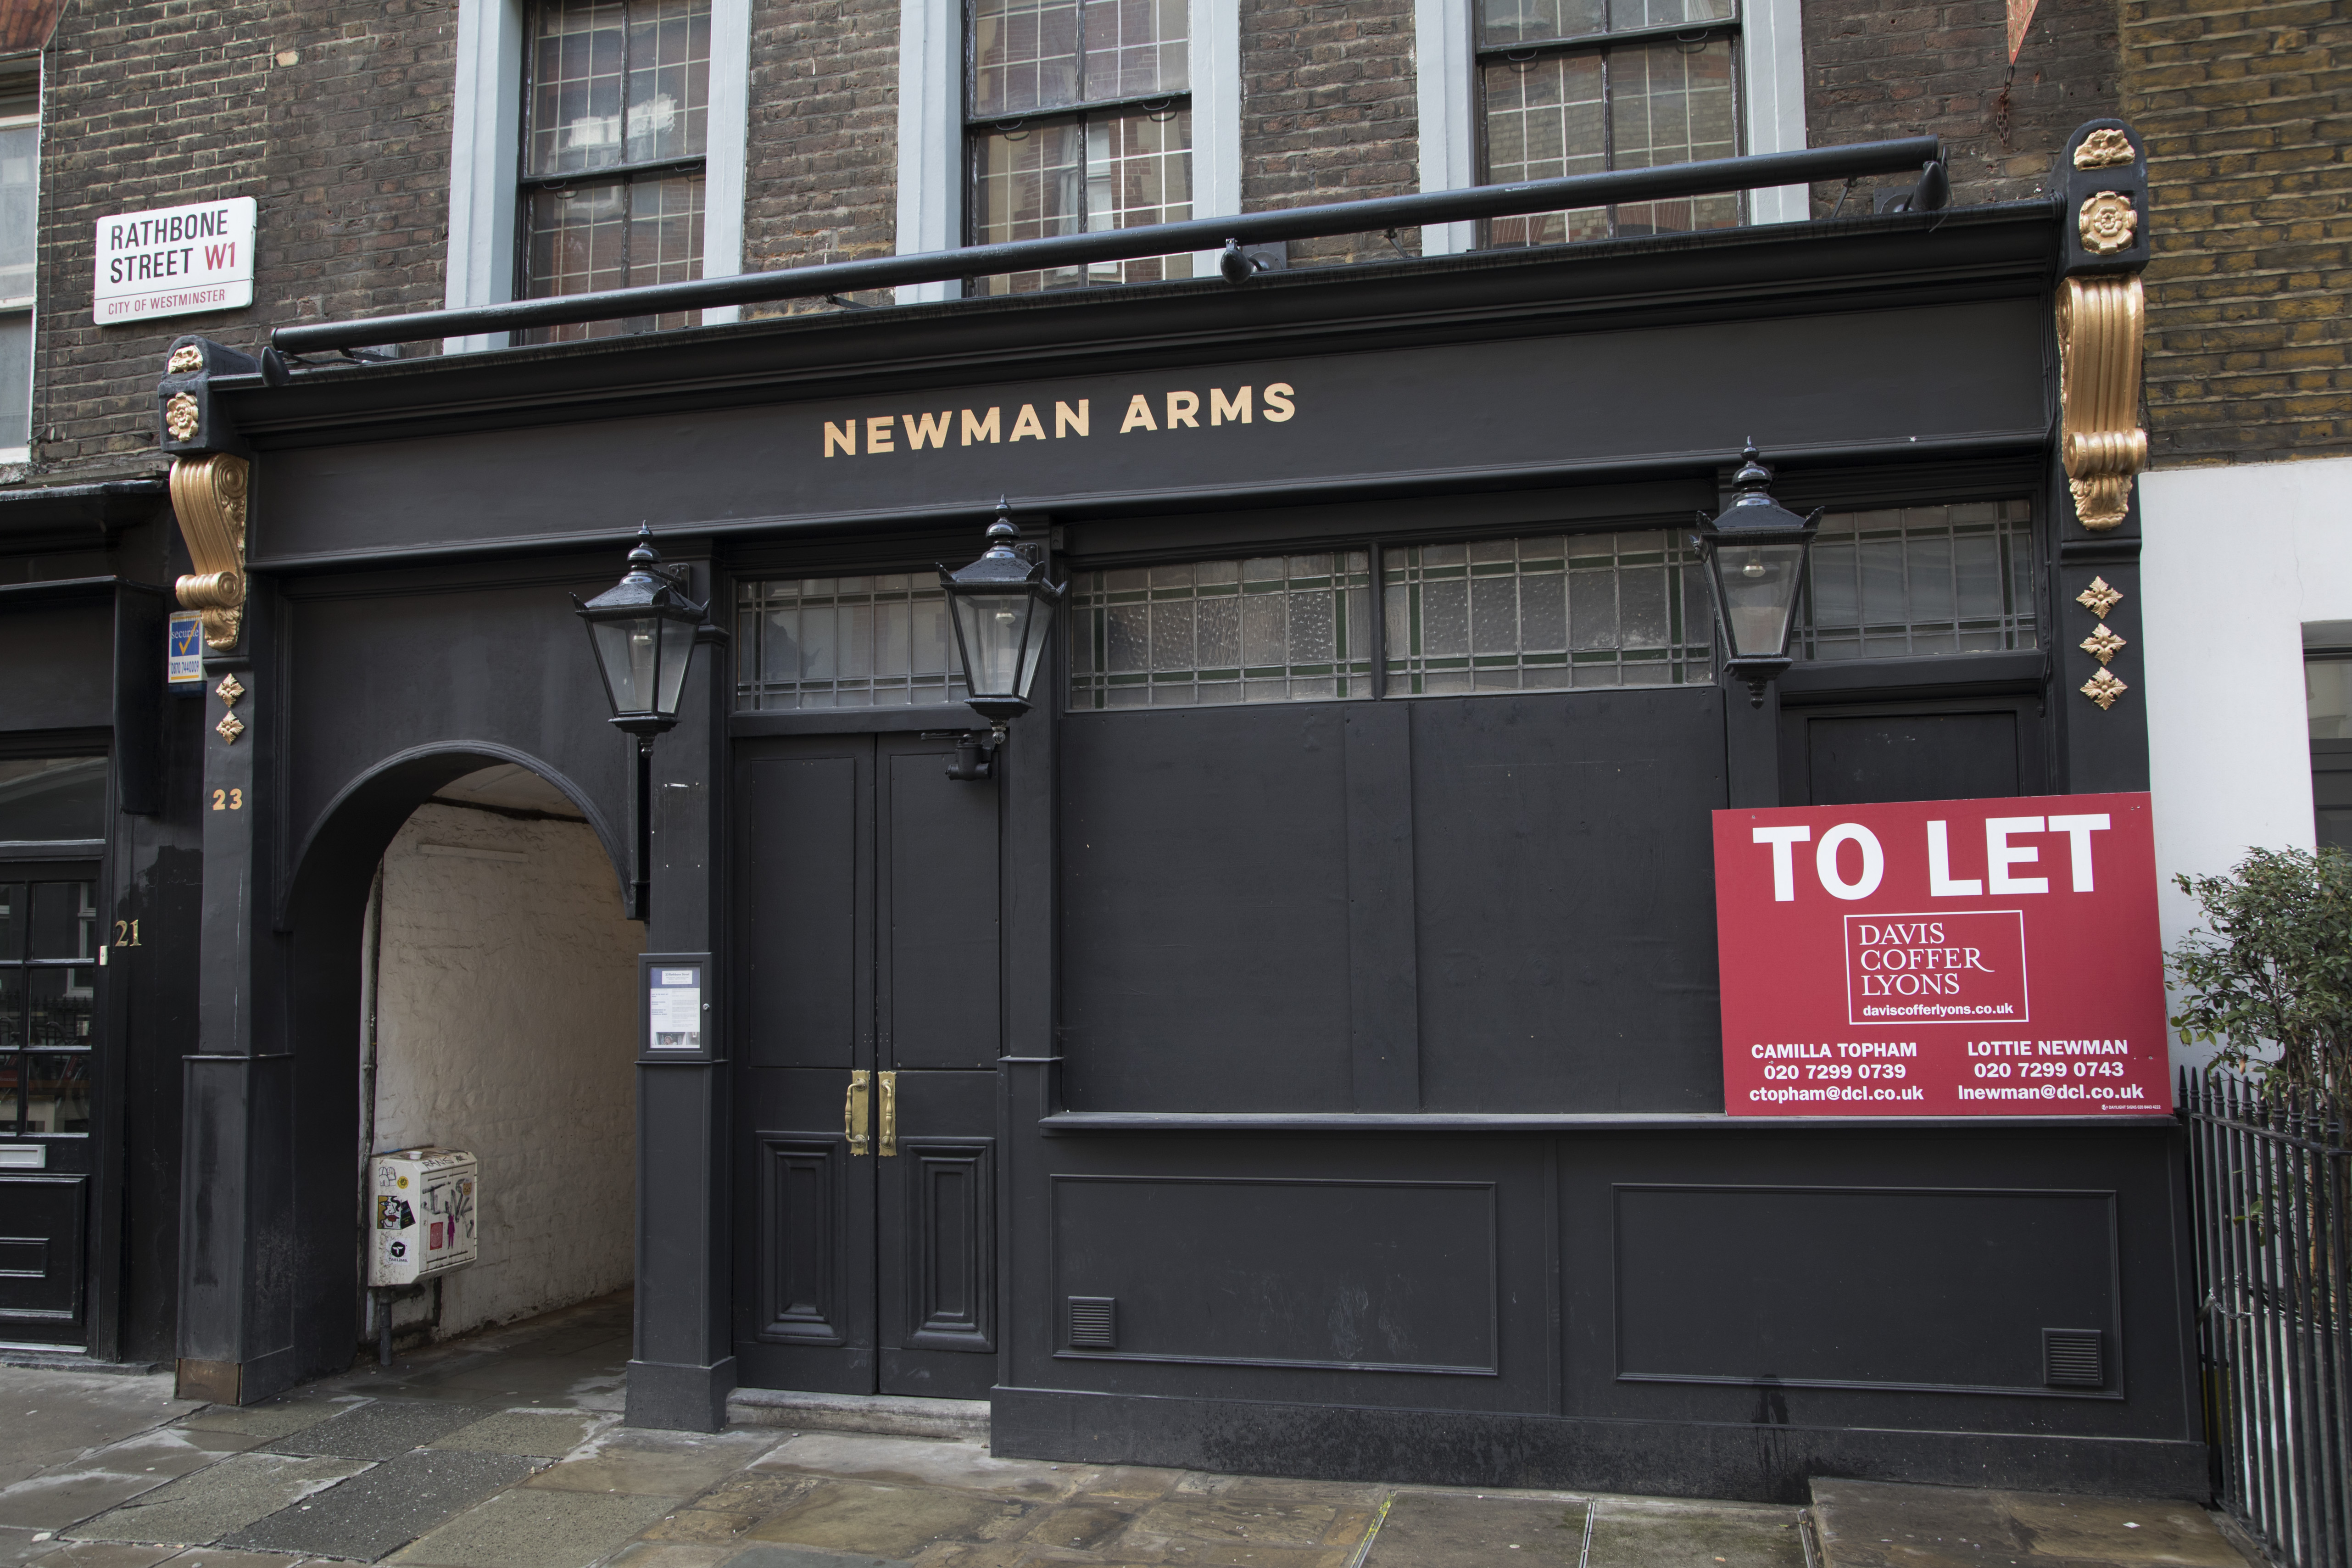 The Newman Arms closed down pub in London, England, United Kingdom.